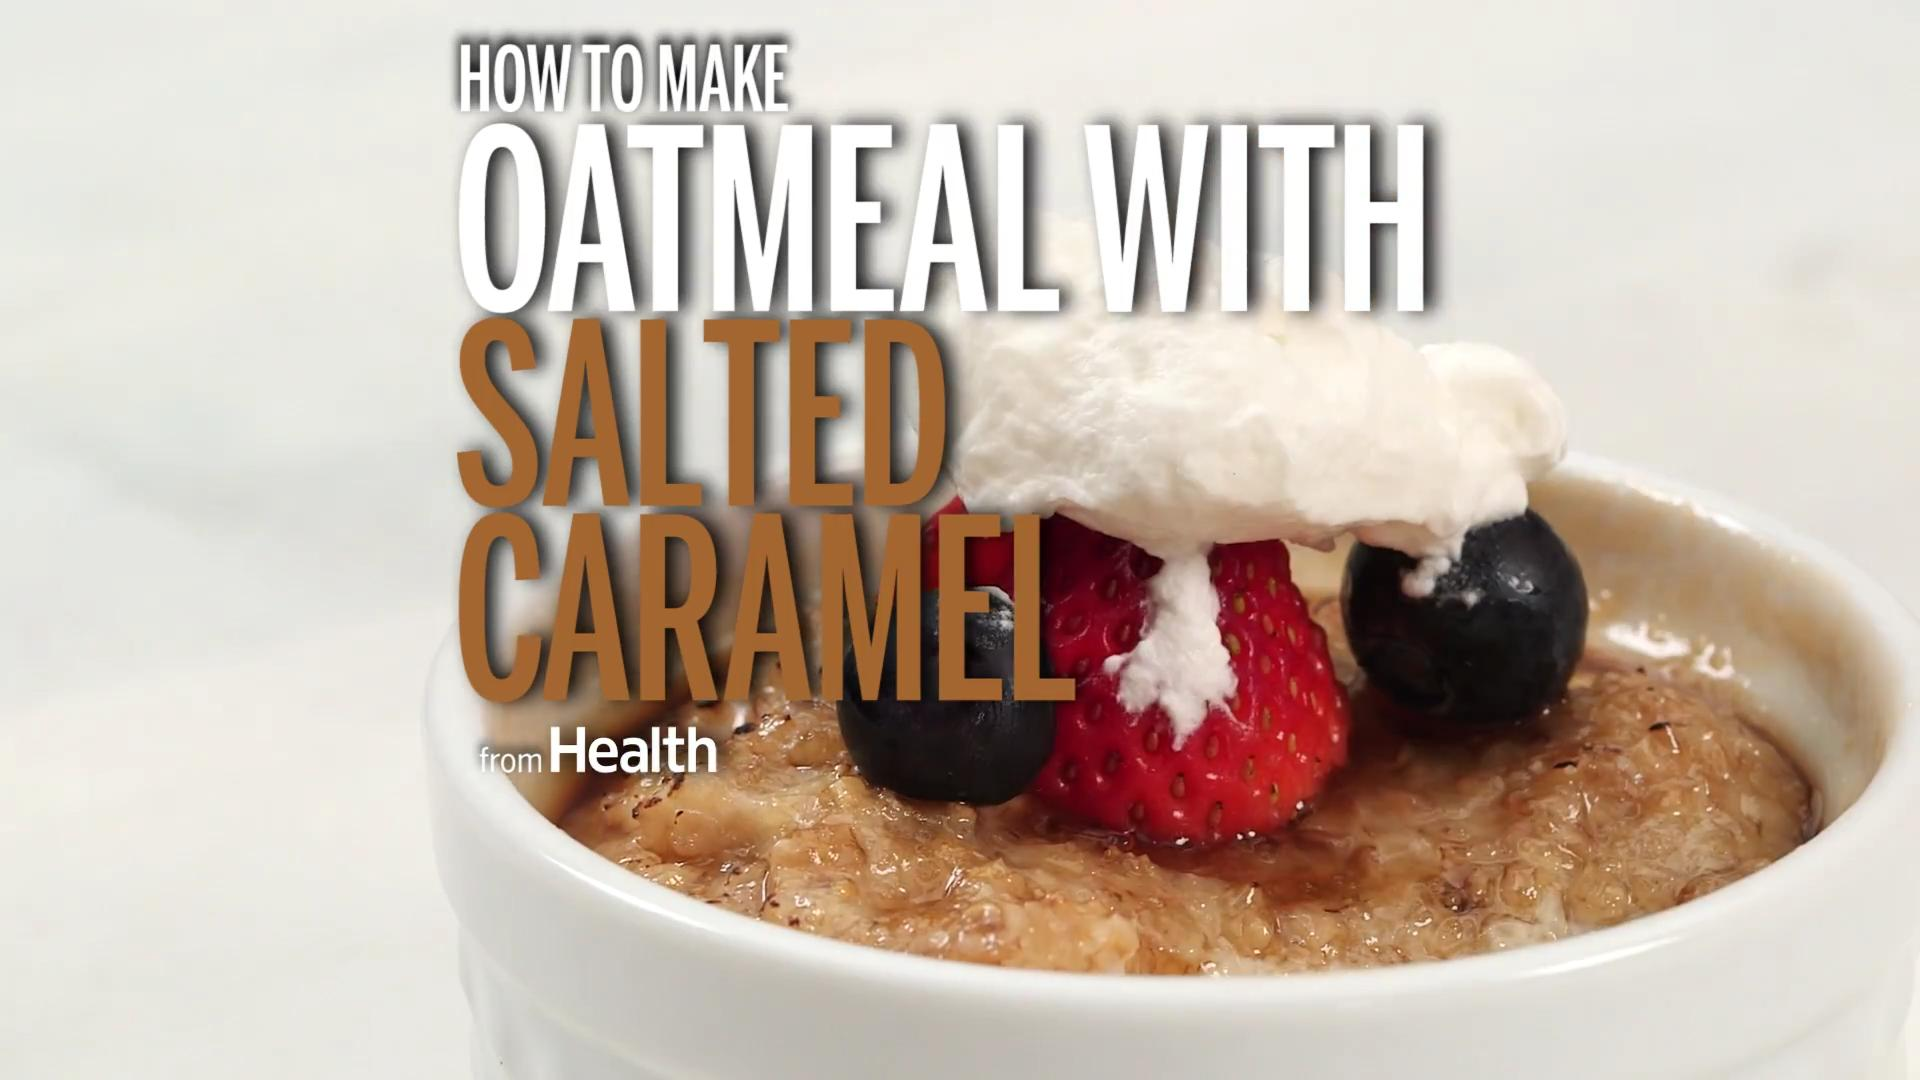 Steel-Cut Oatmeal with Salted Caramel Topping